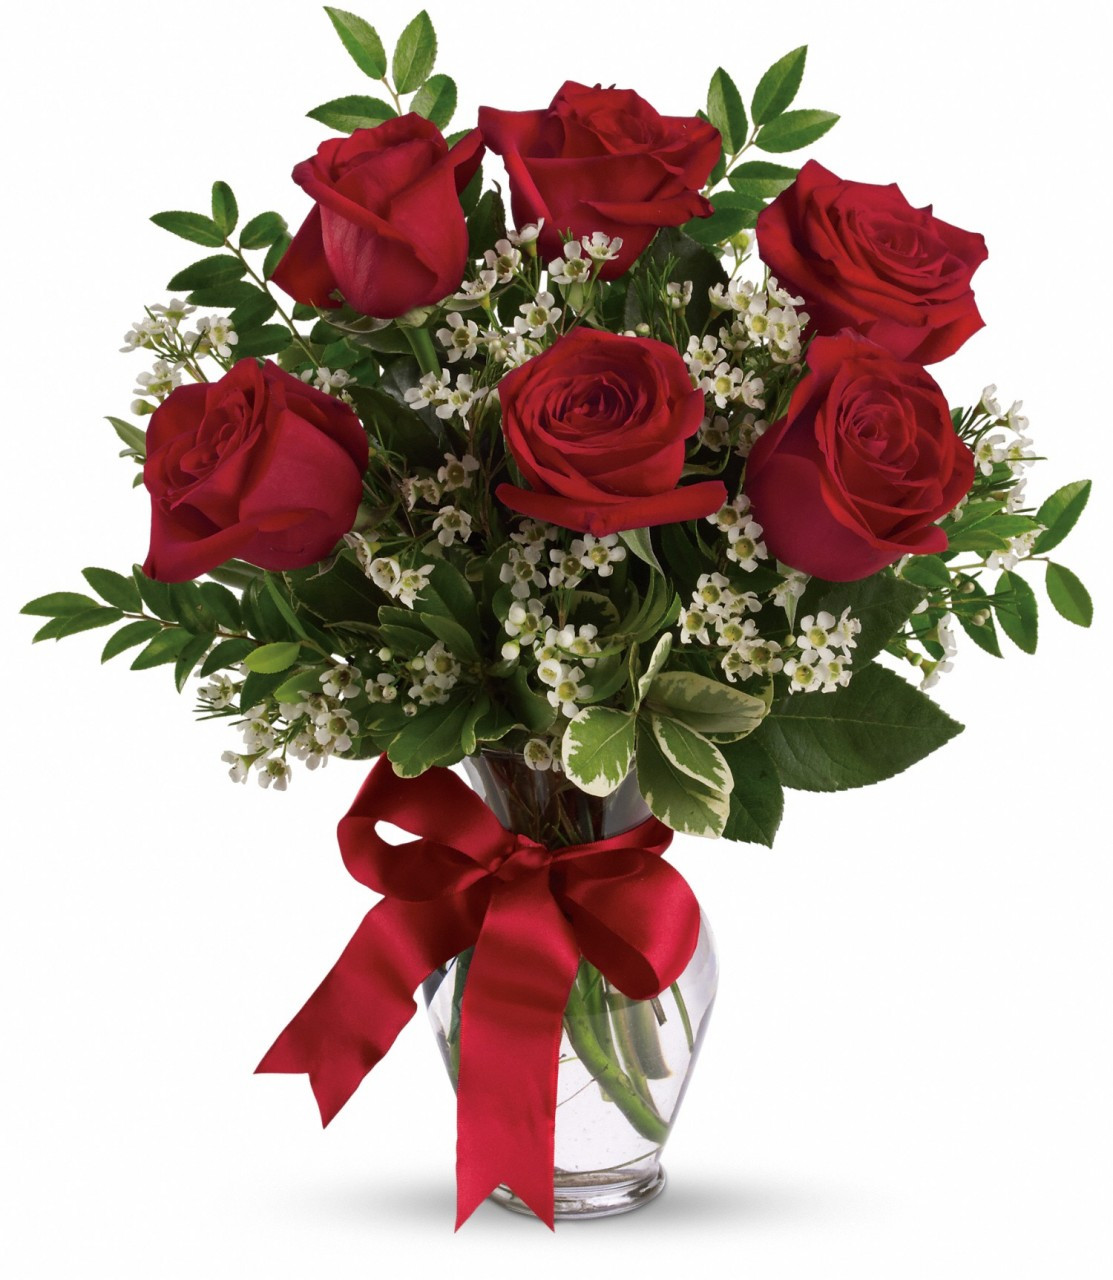 6 Red Roses - Flowers From The Rainflorist - Ft. Lauderdale